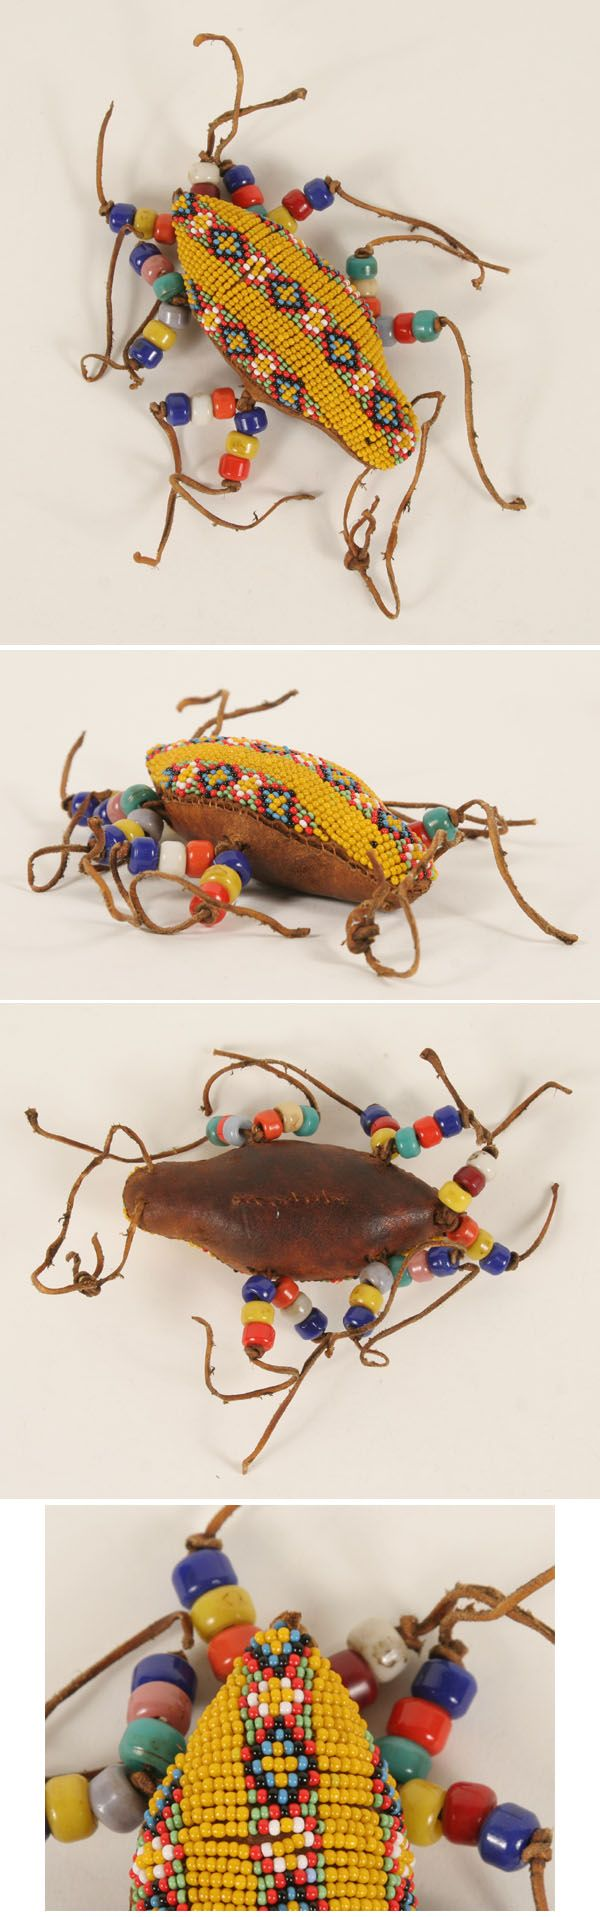 Native American beaded umbilical fetish